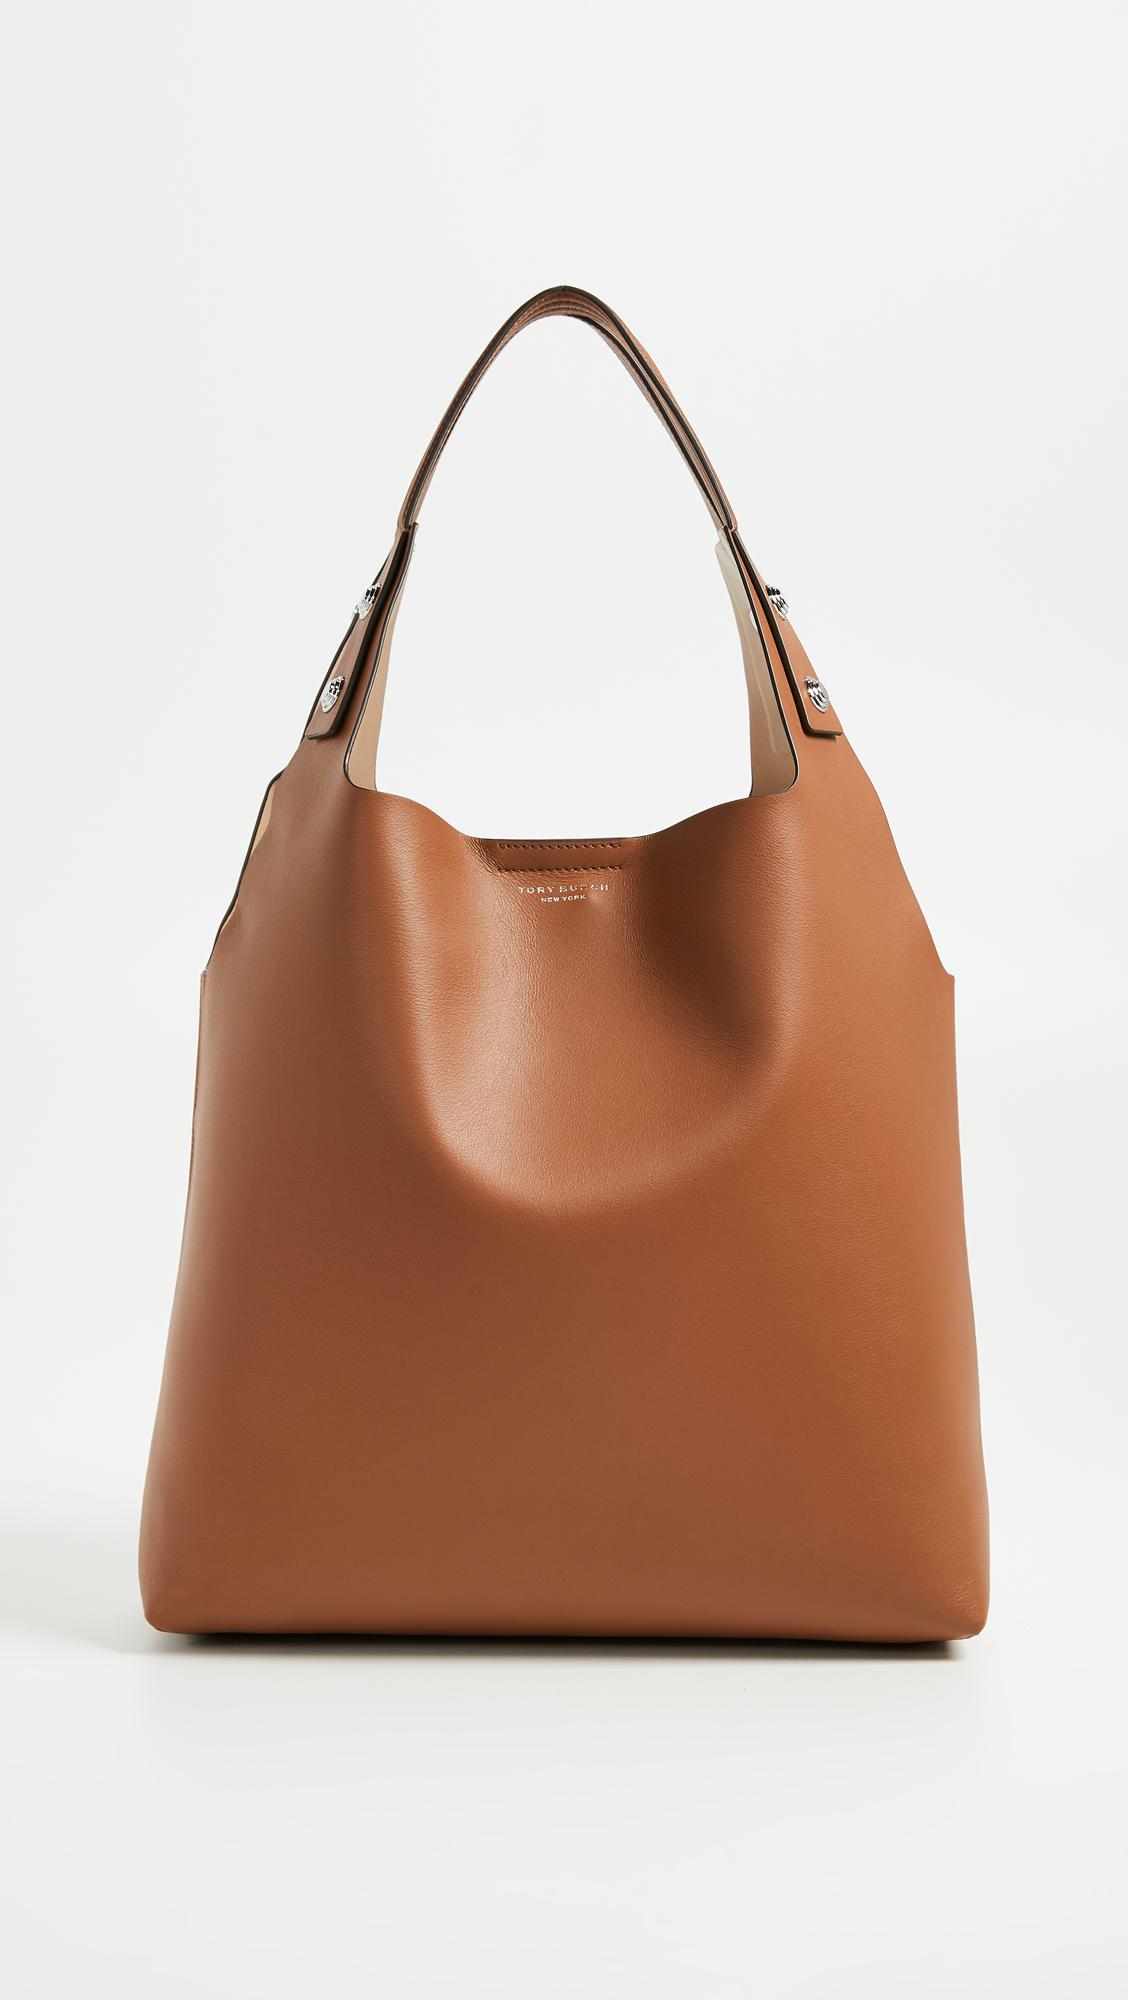 Lyst - Tory Burch Rory Tote in Brown 689dd3f1ab